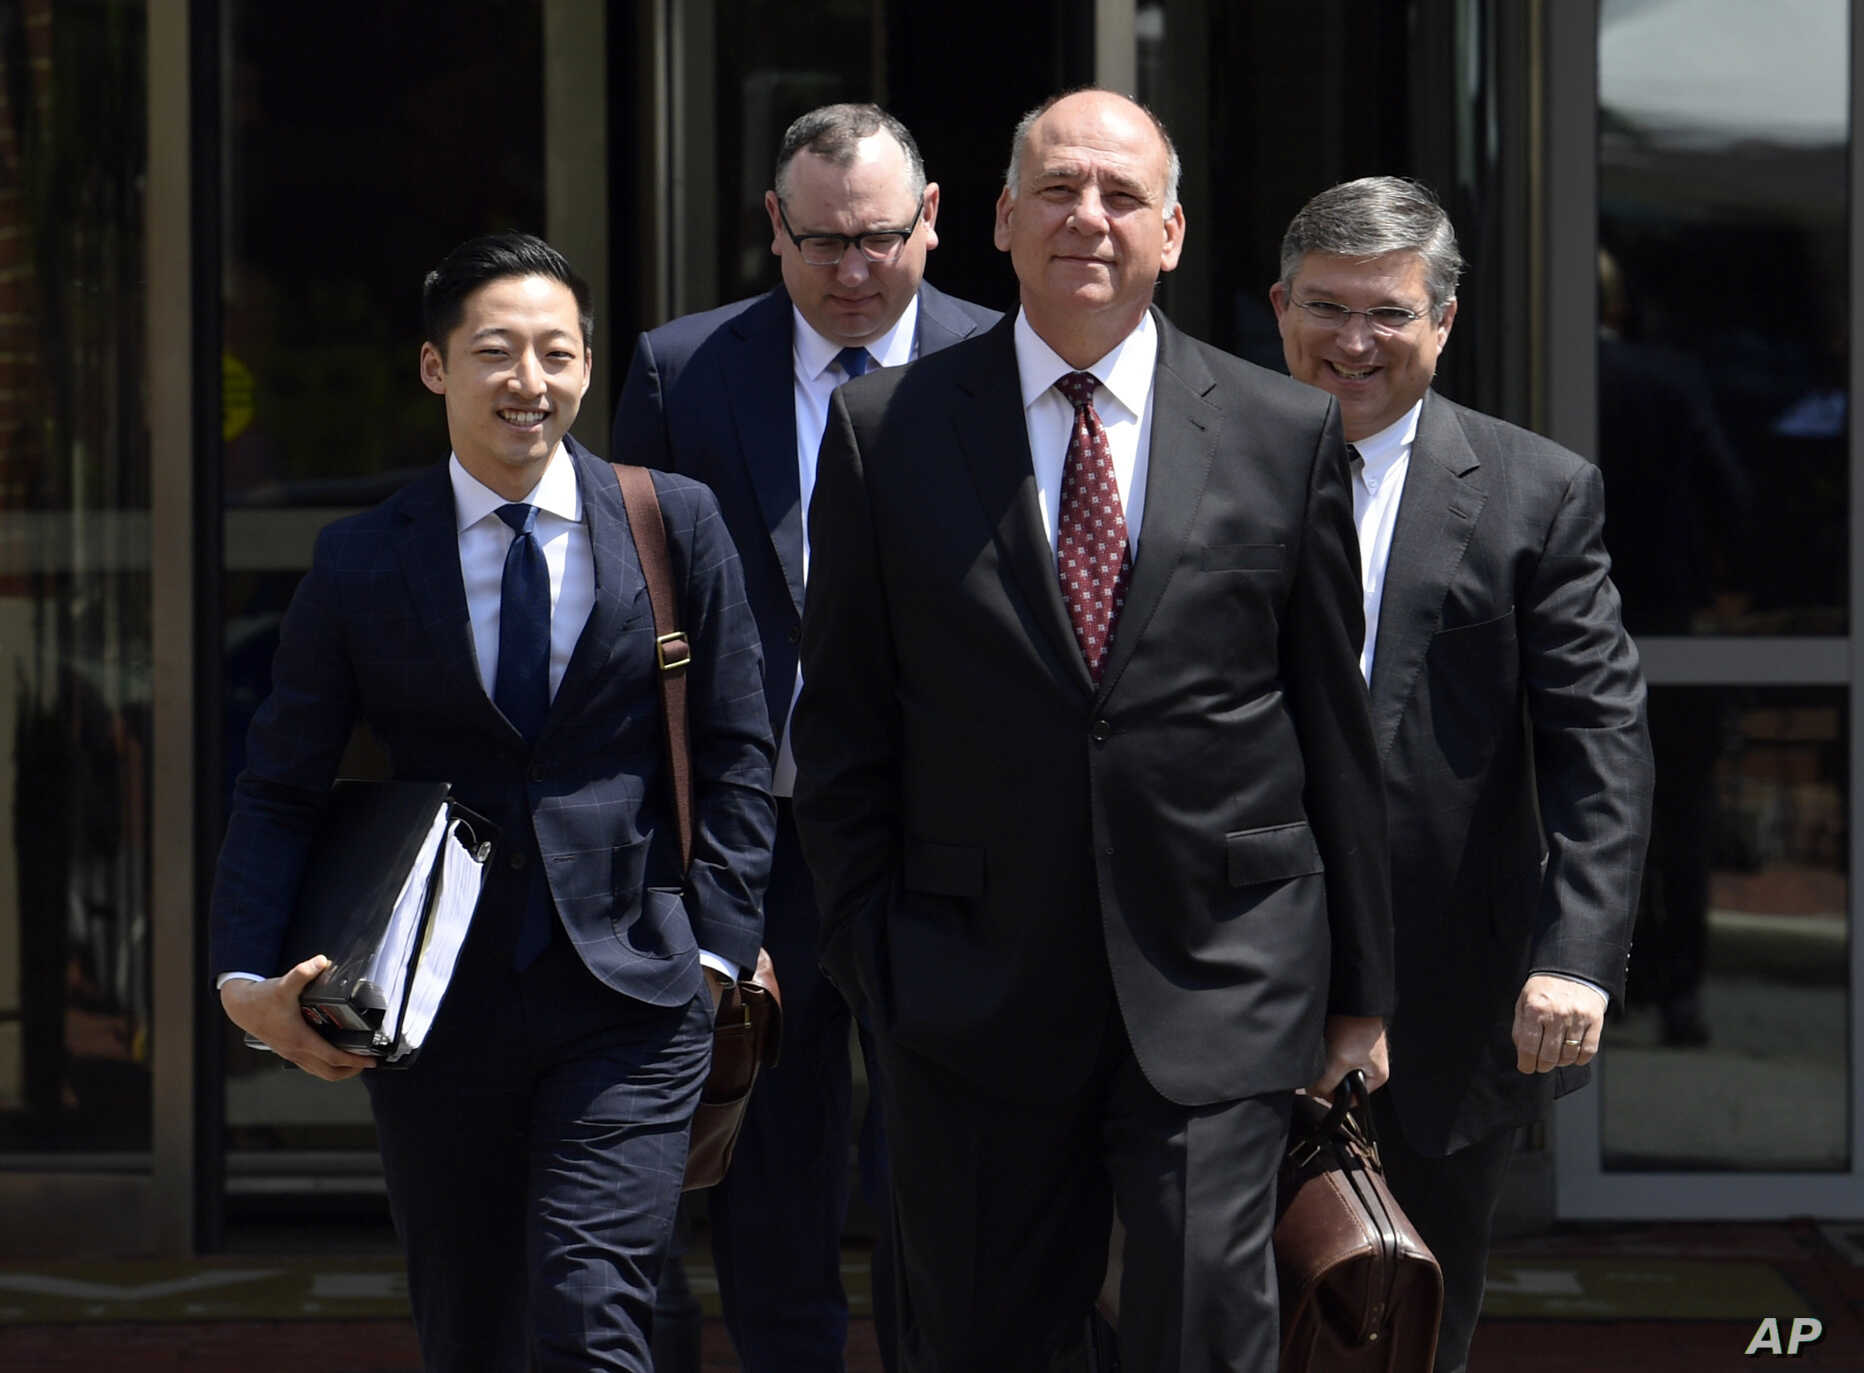 Thomas Zehnle (2nd-R), attorney for Paul Manafort, President Donald Trump's former campaign chairman, walks with other members of the defense team to Alexandria Federal Courthouse in Alexandria, Va., Aug. 6, 2018.